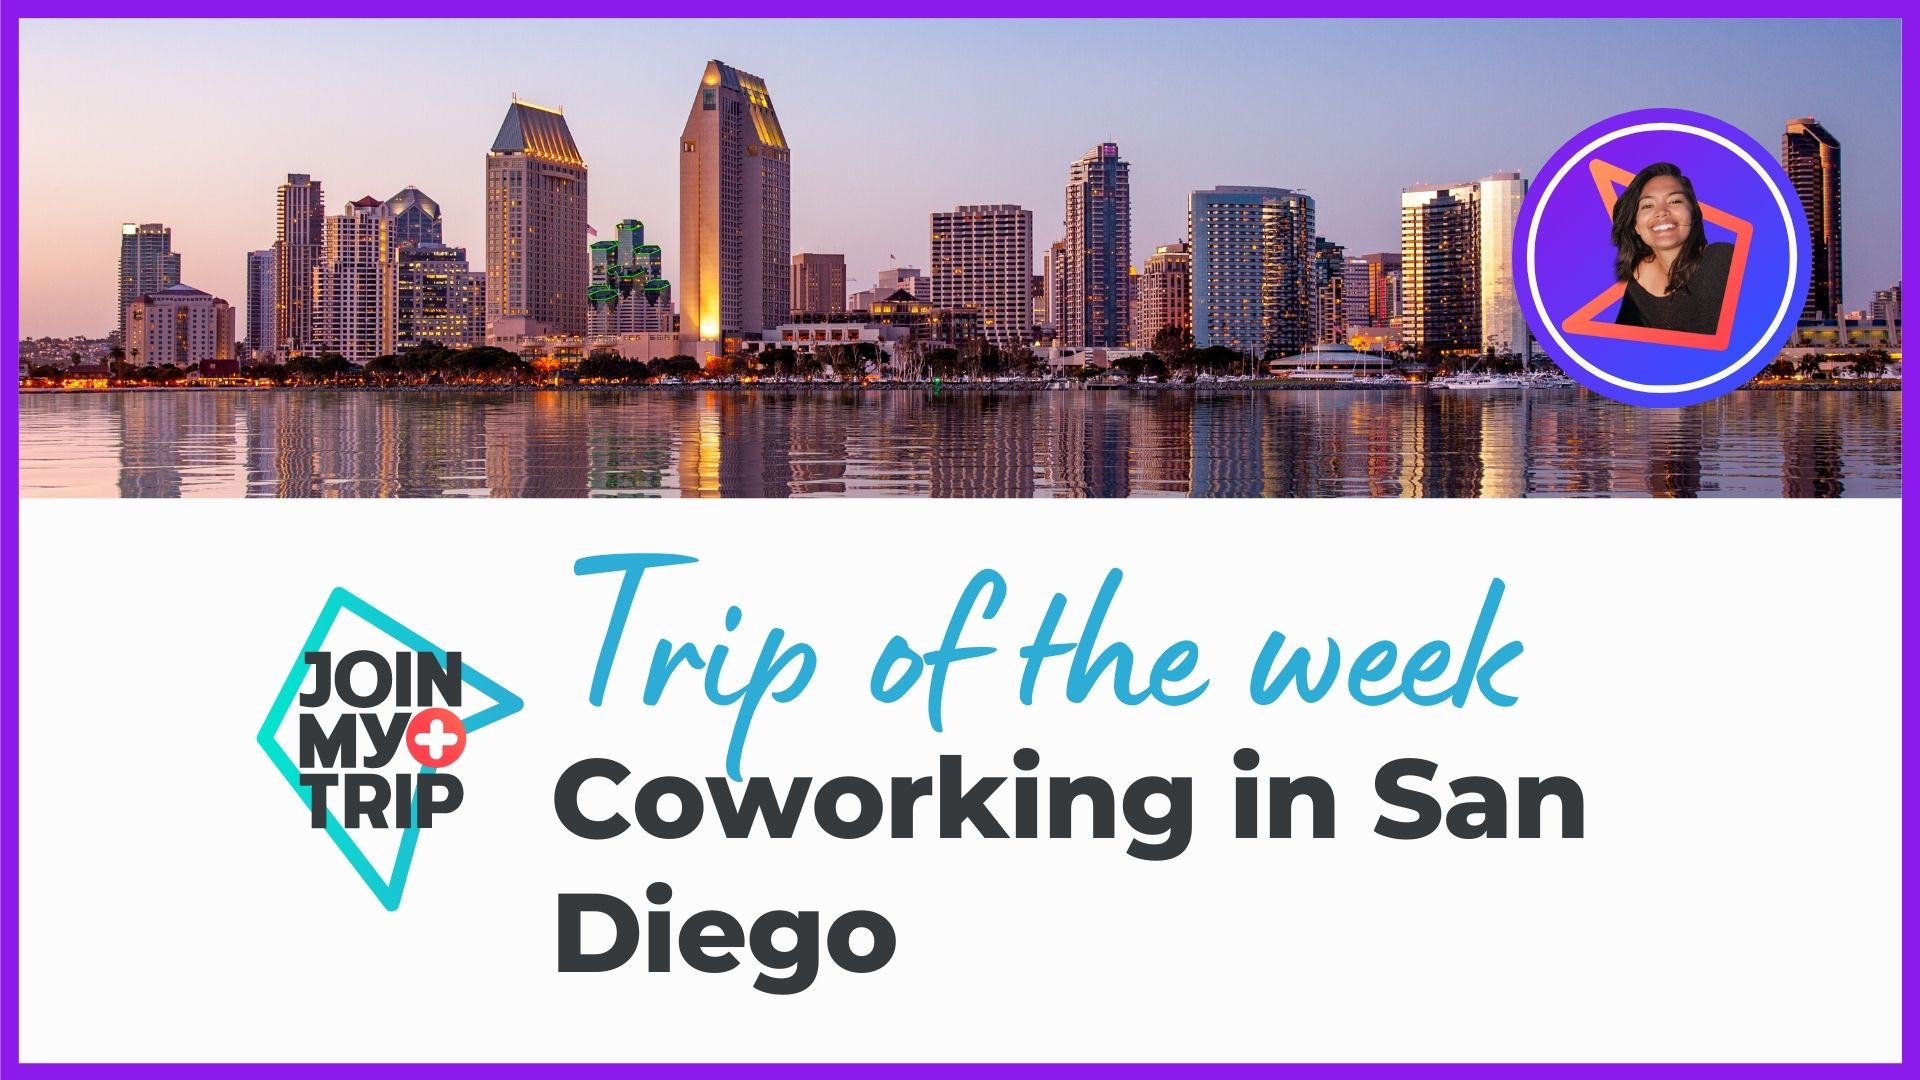 Coworking in San Diego on the trip of the week show.